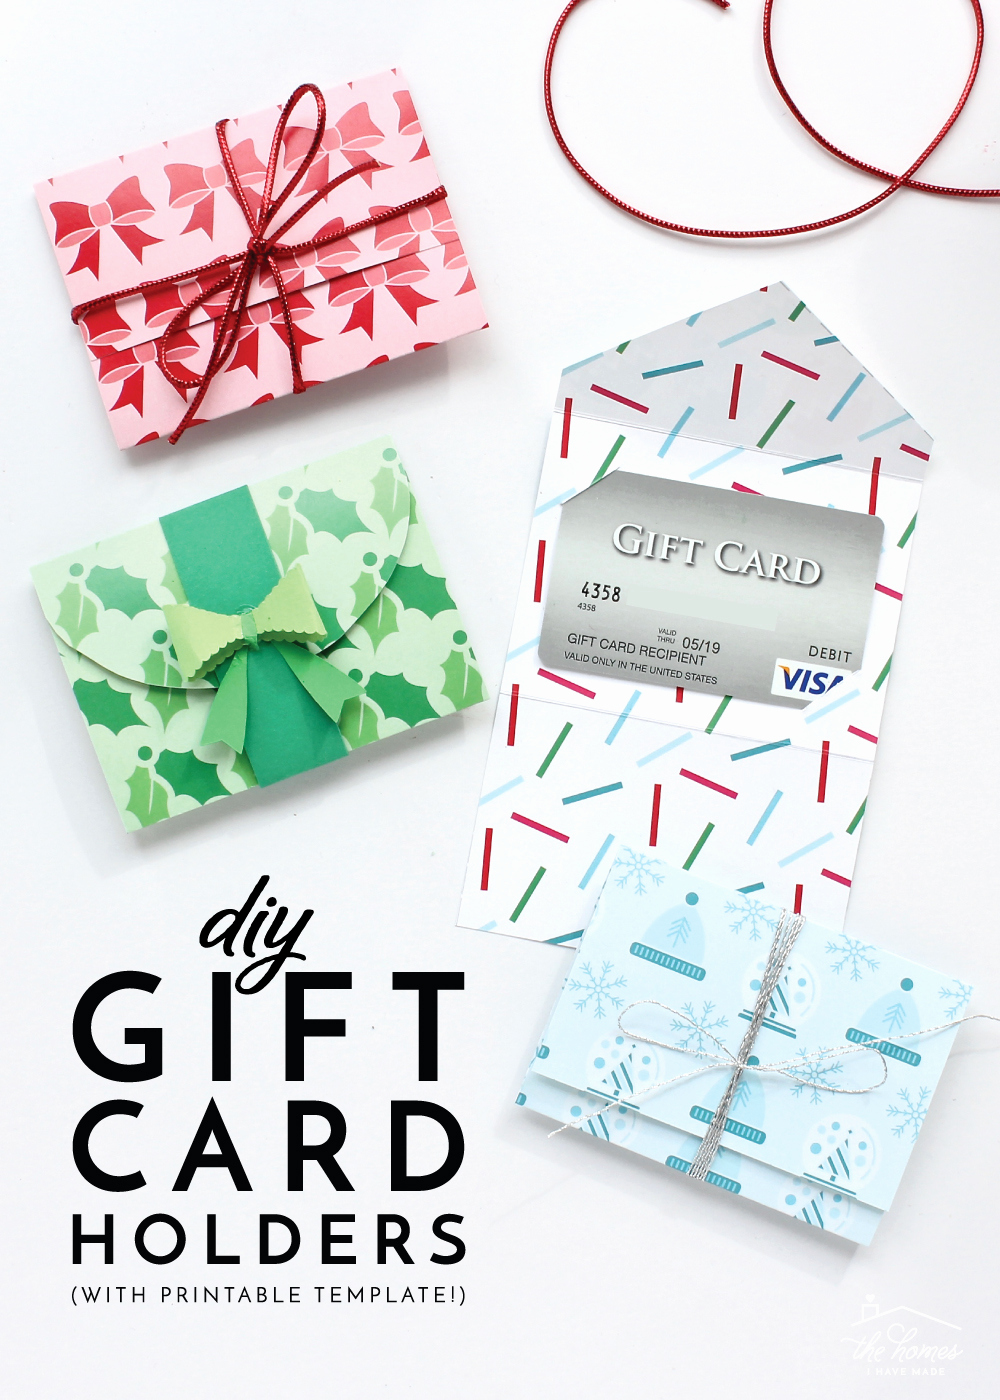 diy t card holders with printable template